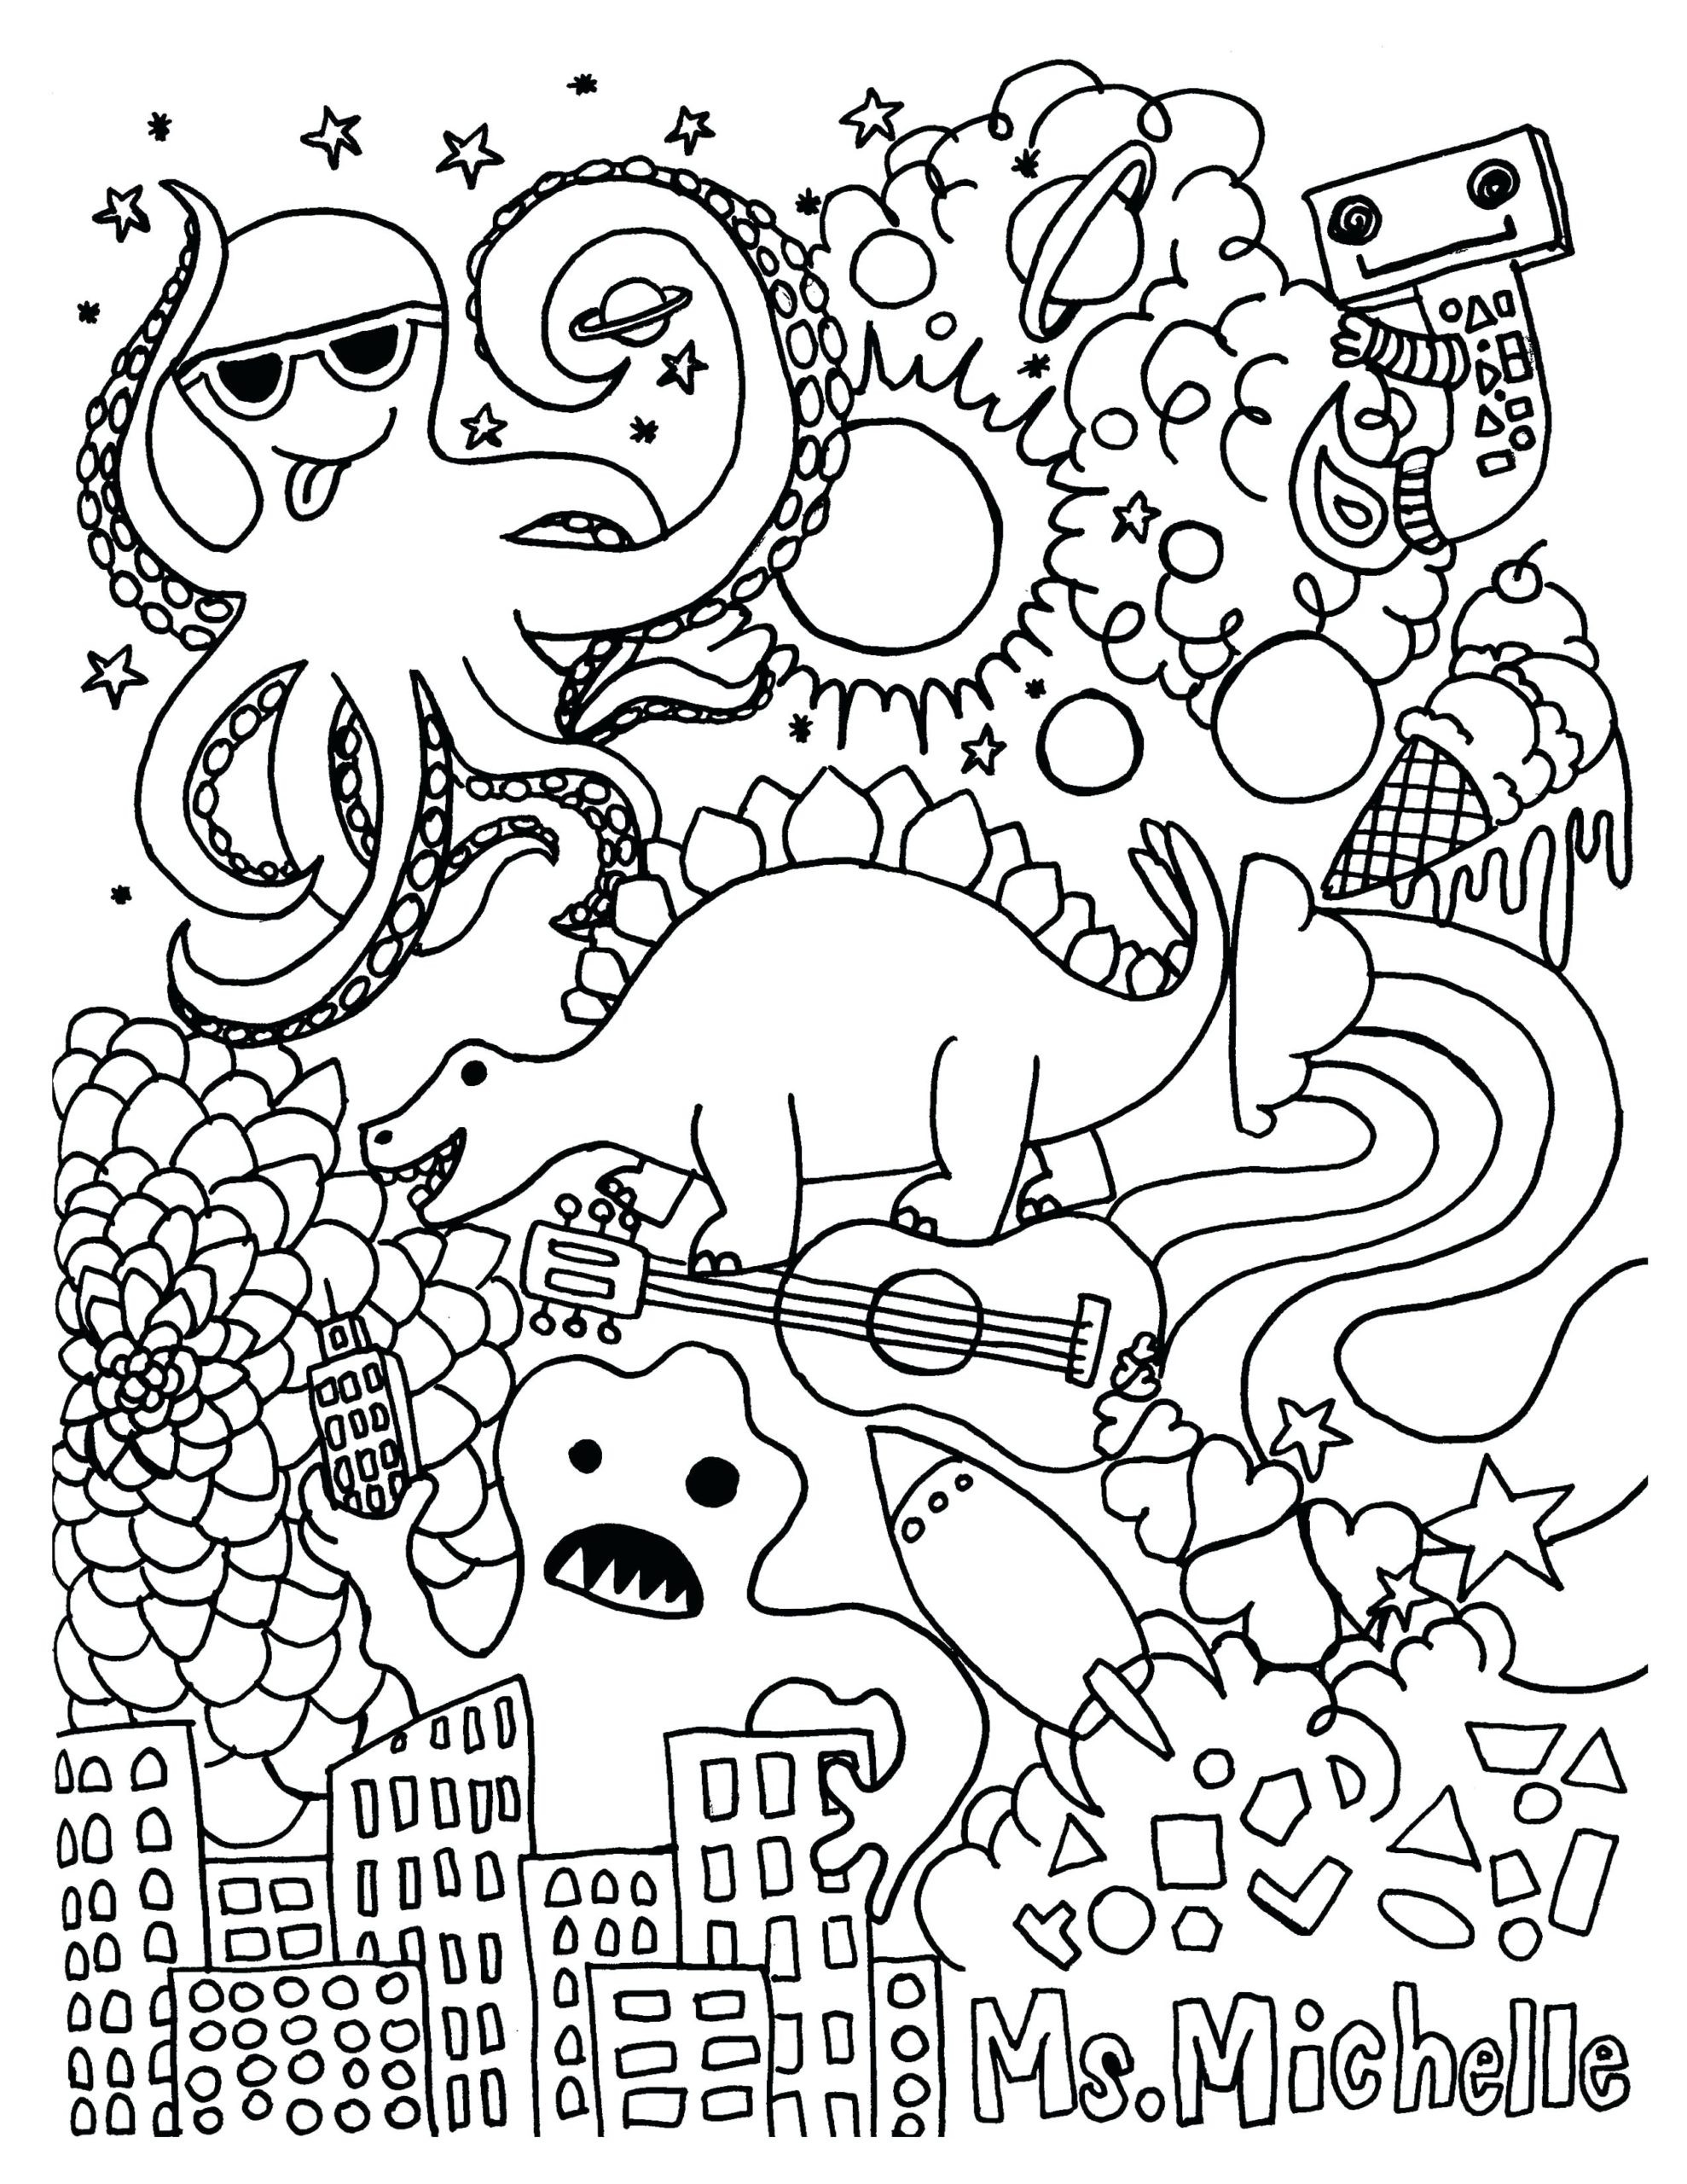 Coloring Worksheets for 2nd Grade Free Math Coloring Worksheets Tag Awesome Math Coloring